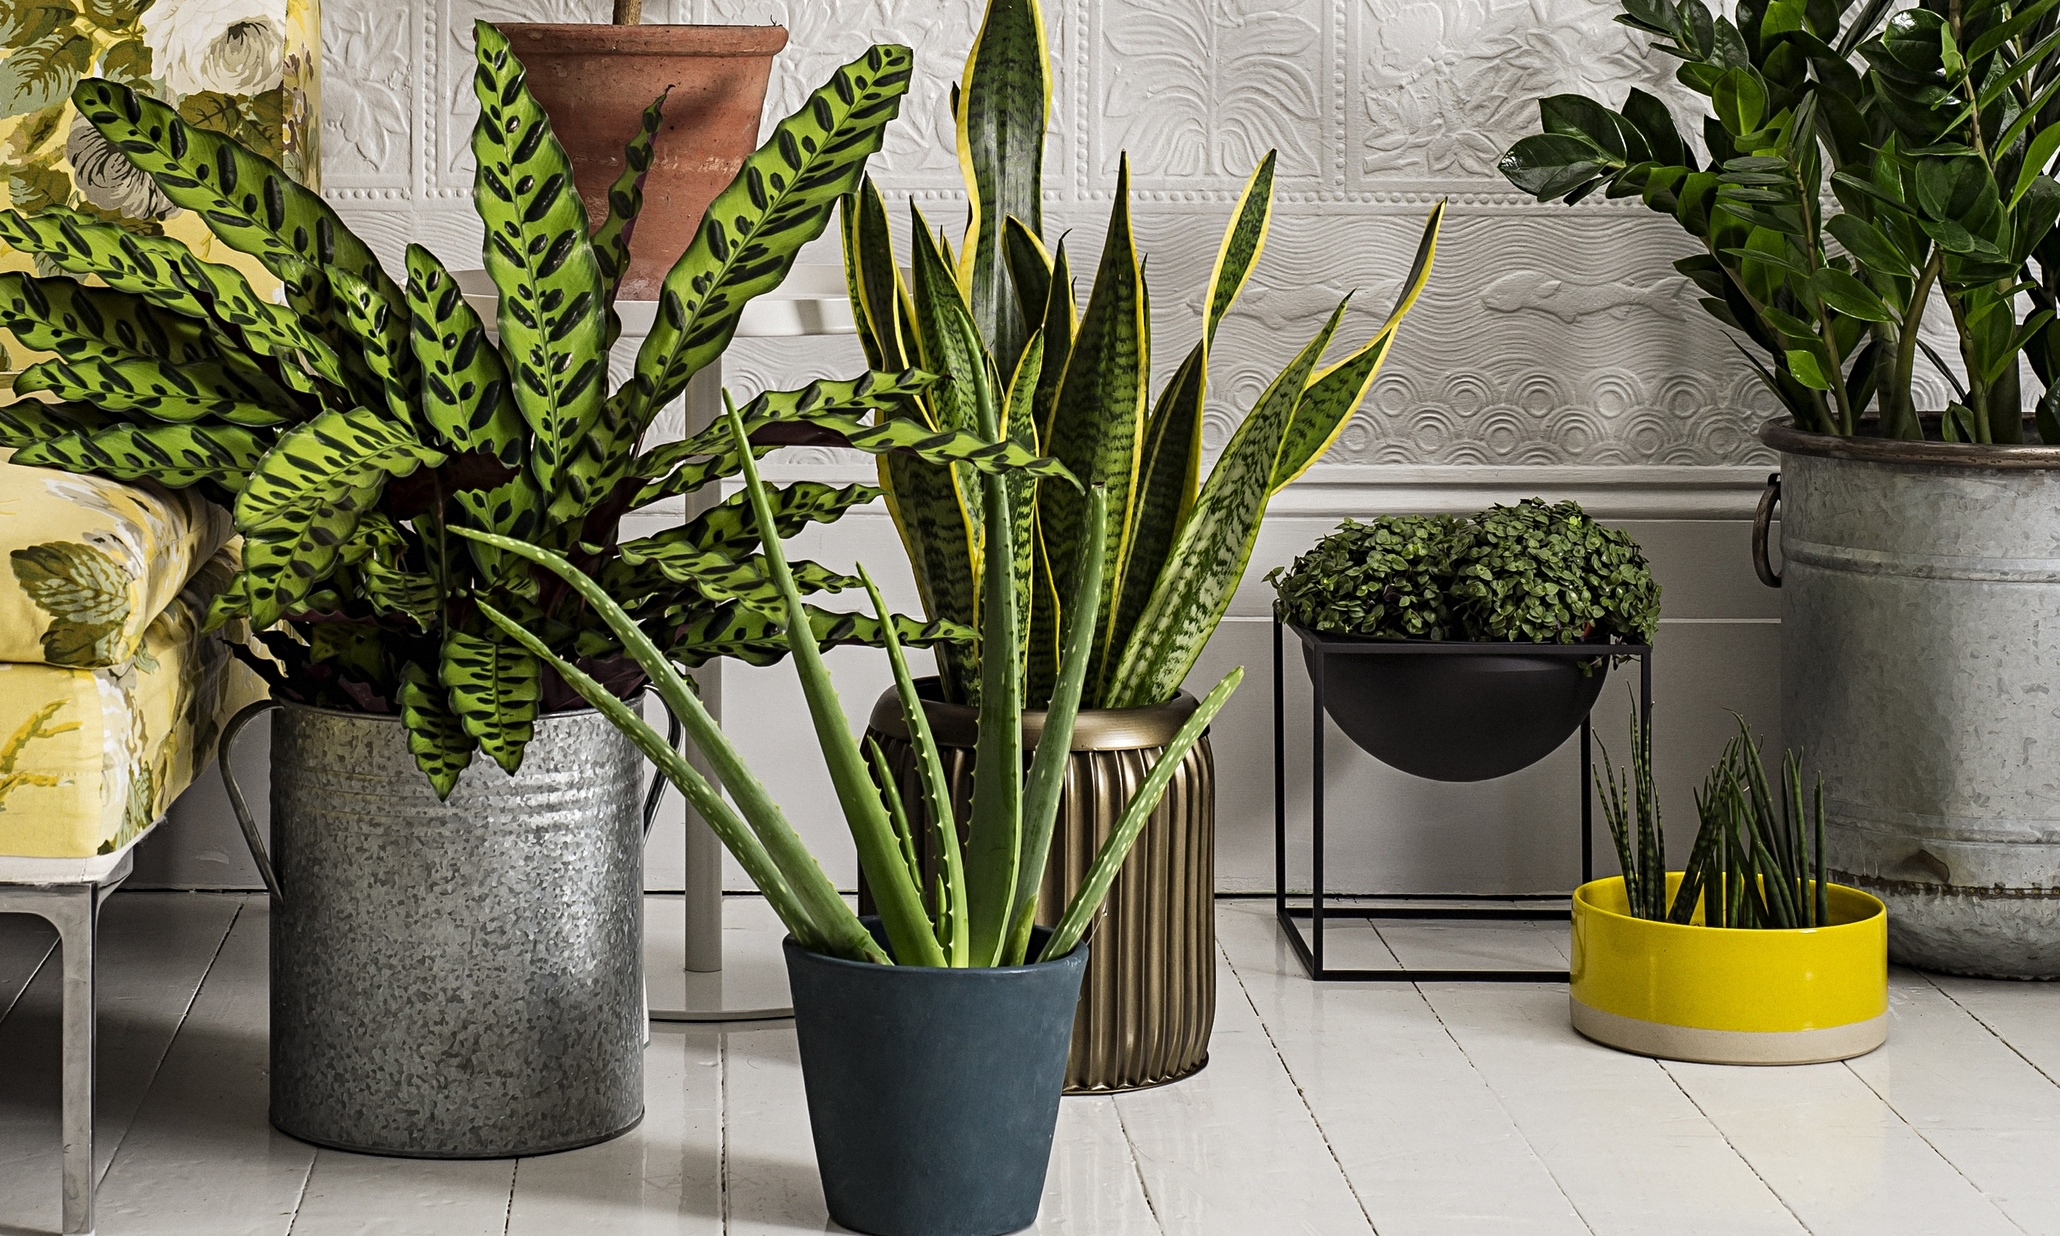 How to Introduce Plants to Your Home